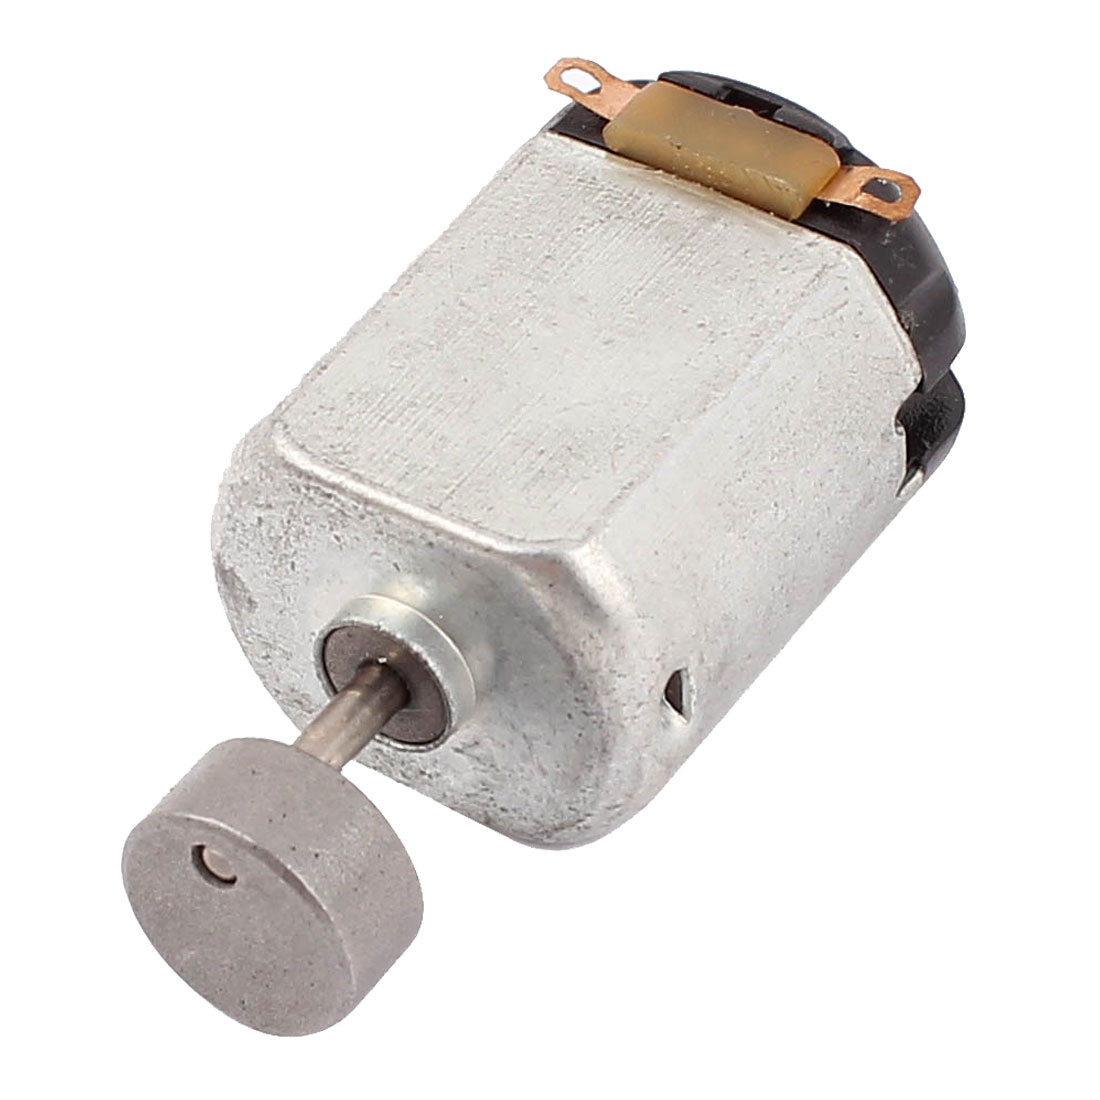 DC 6V 2500RPM Mini High Speed Vibration Motor Repair Parts for Toys Massager